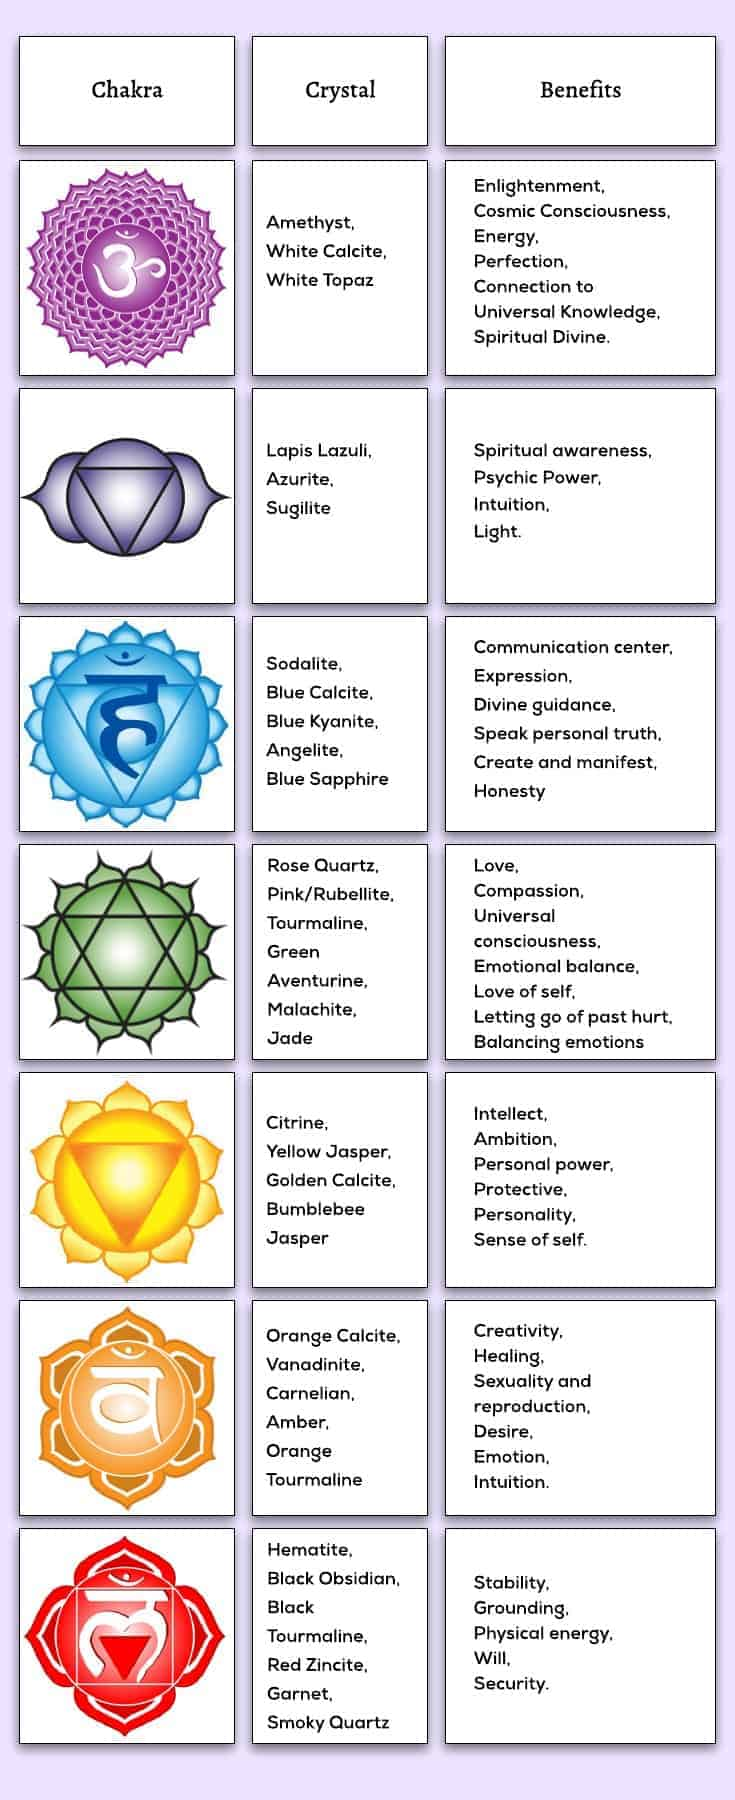 Natural Healing Crystals Guide - Chakras